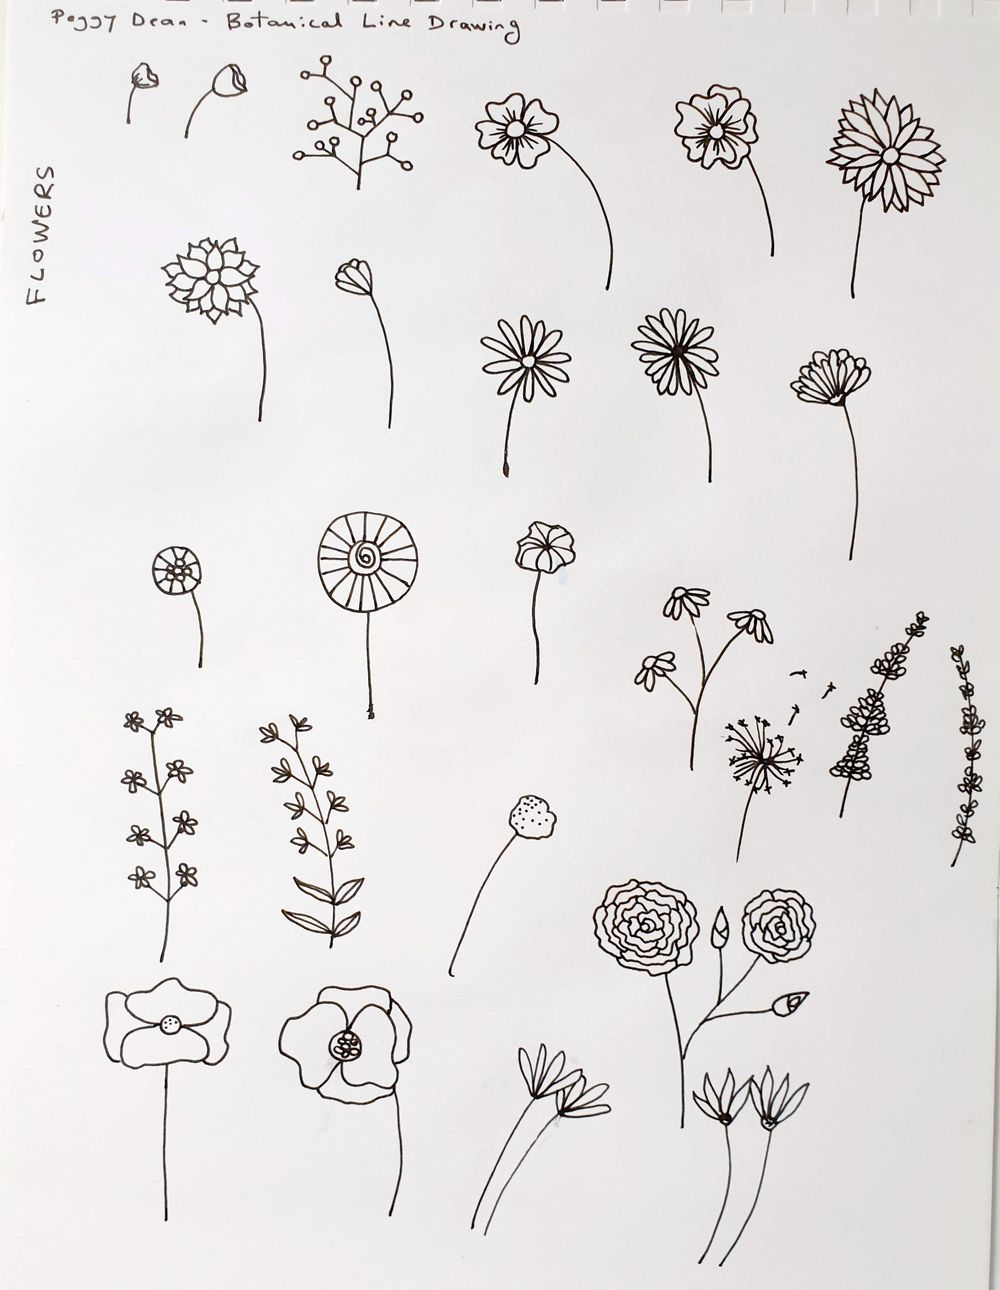 Botanical Line Drawing - image 1 - student project